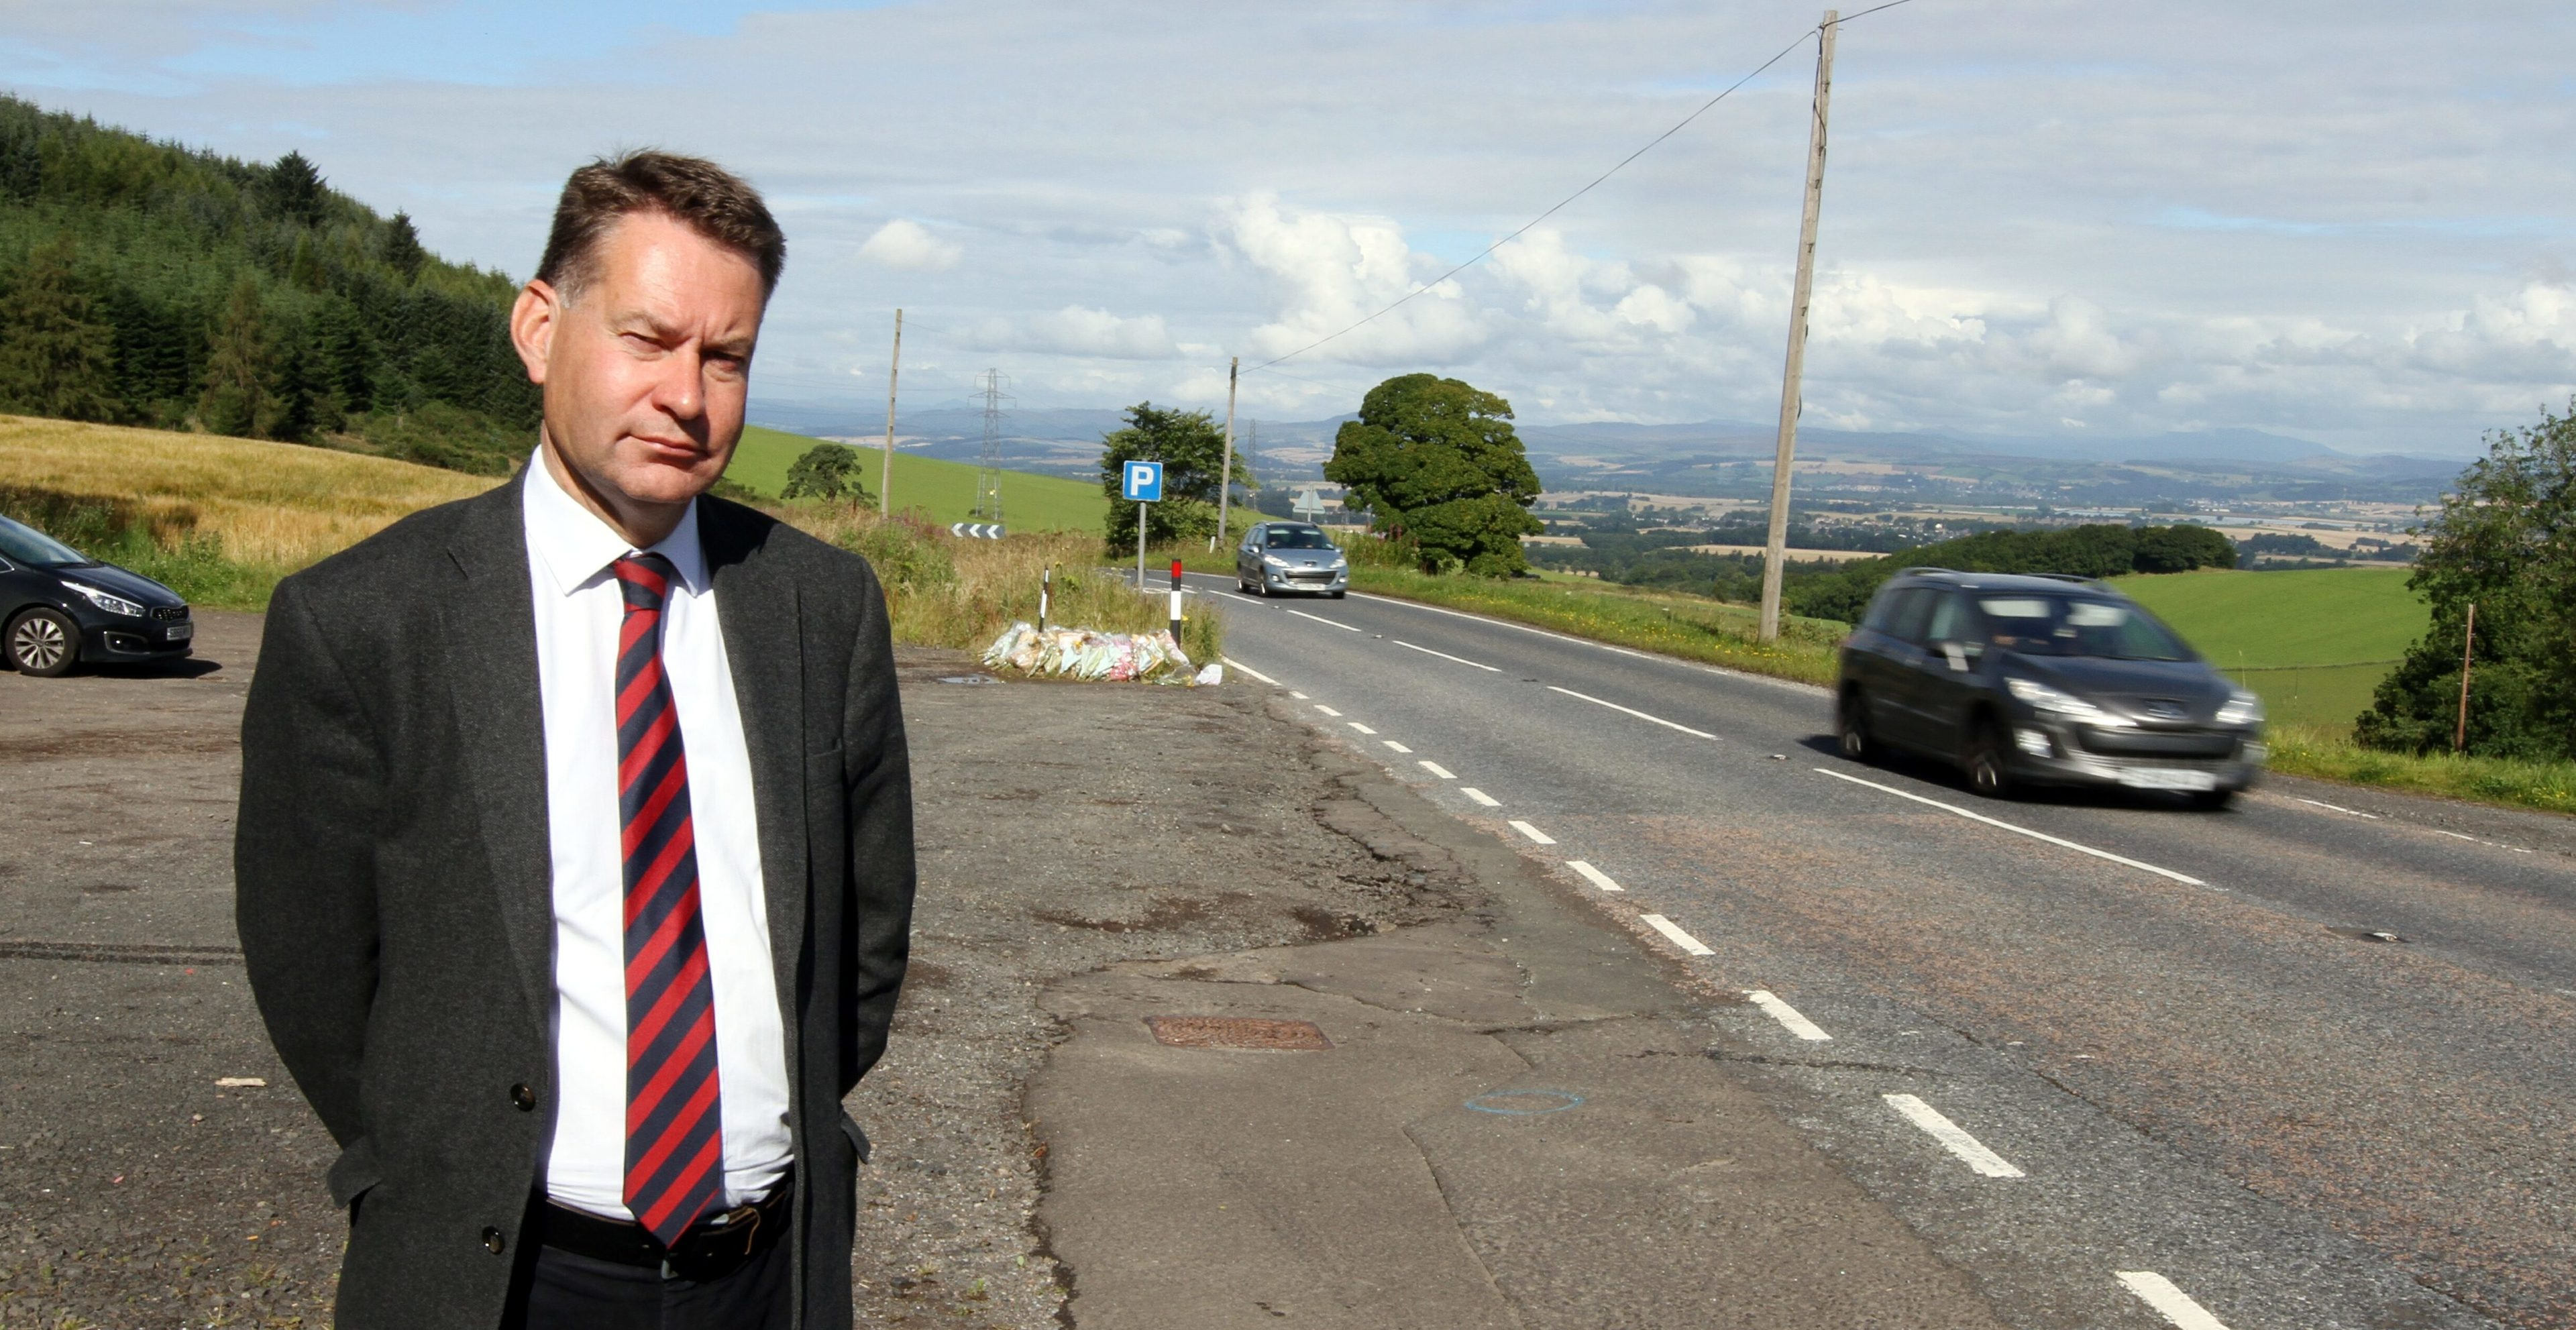 Murdo Fraser would like road signs to show the number of casualties.